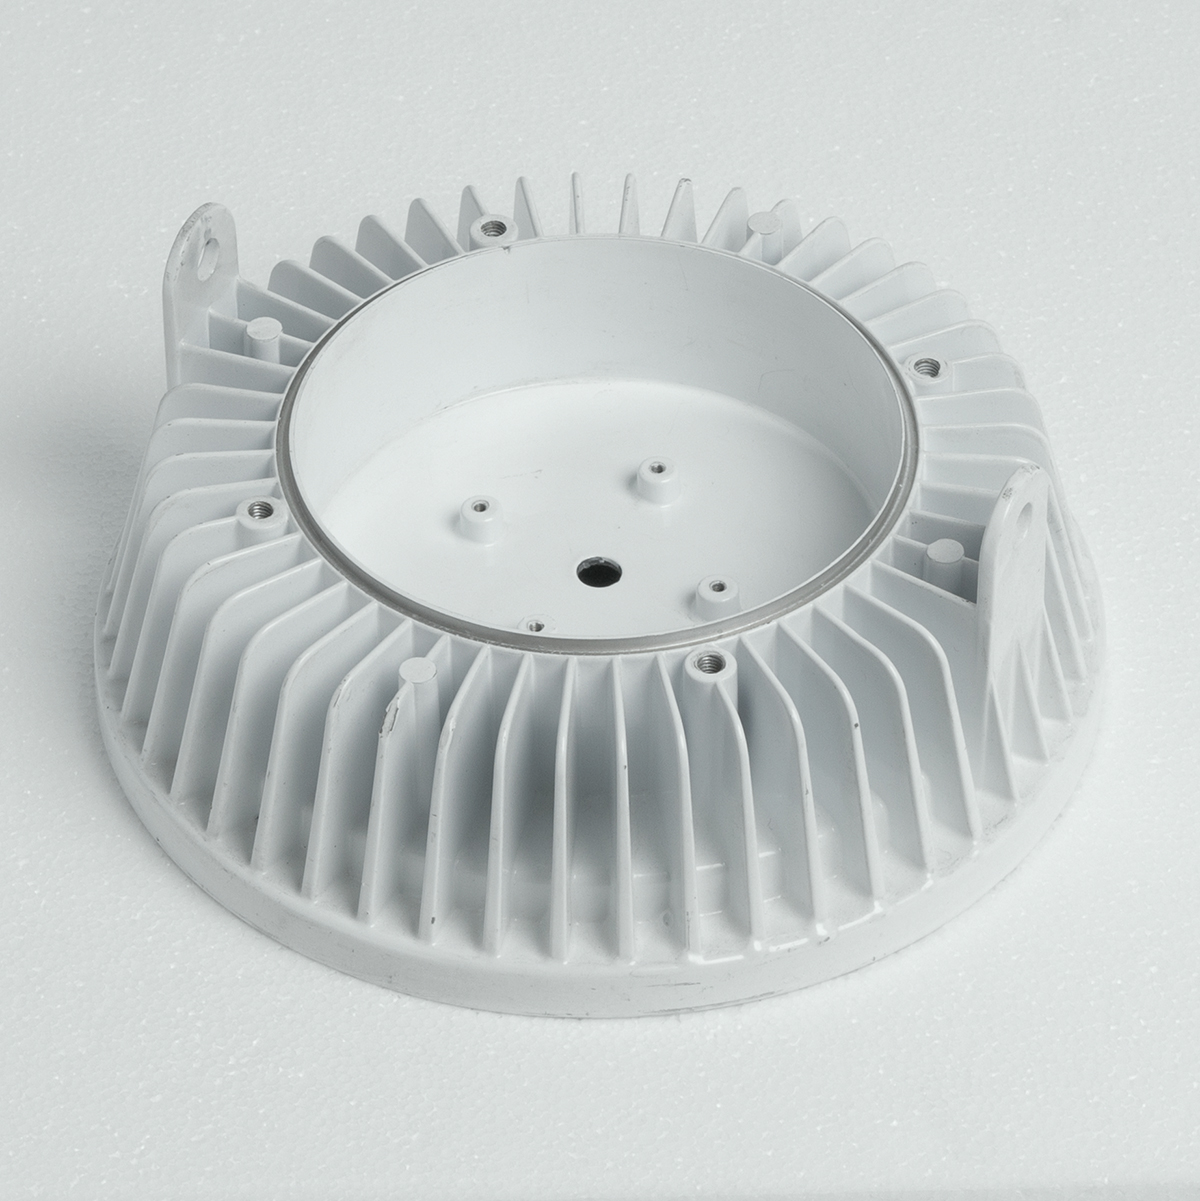 Lamp radiator die-casting Featured Image